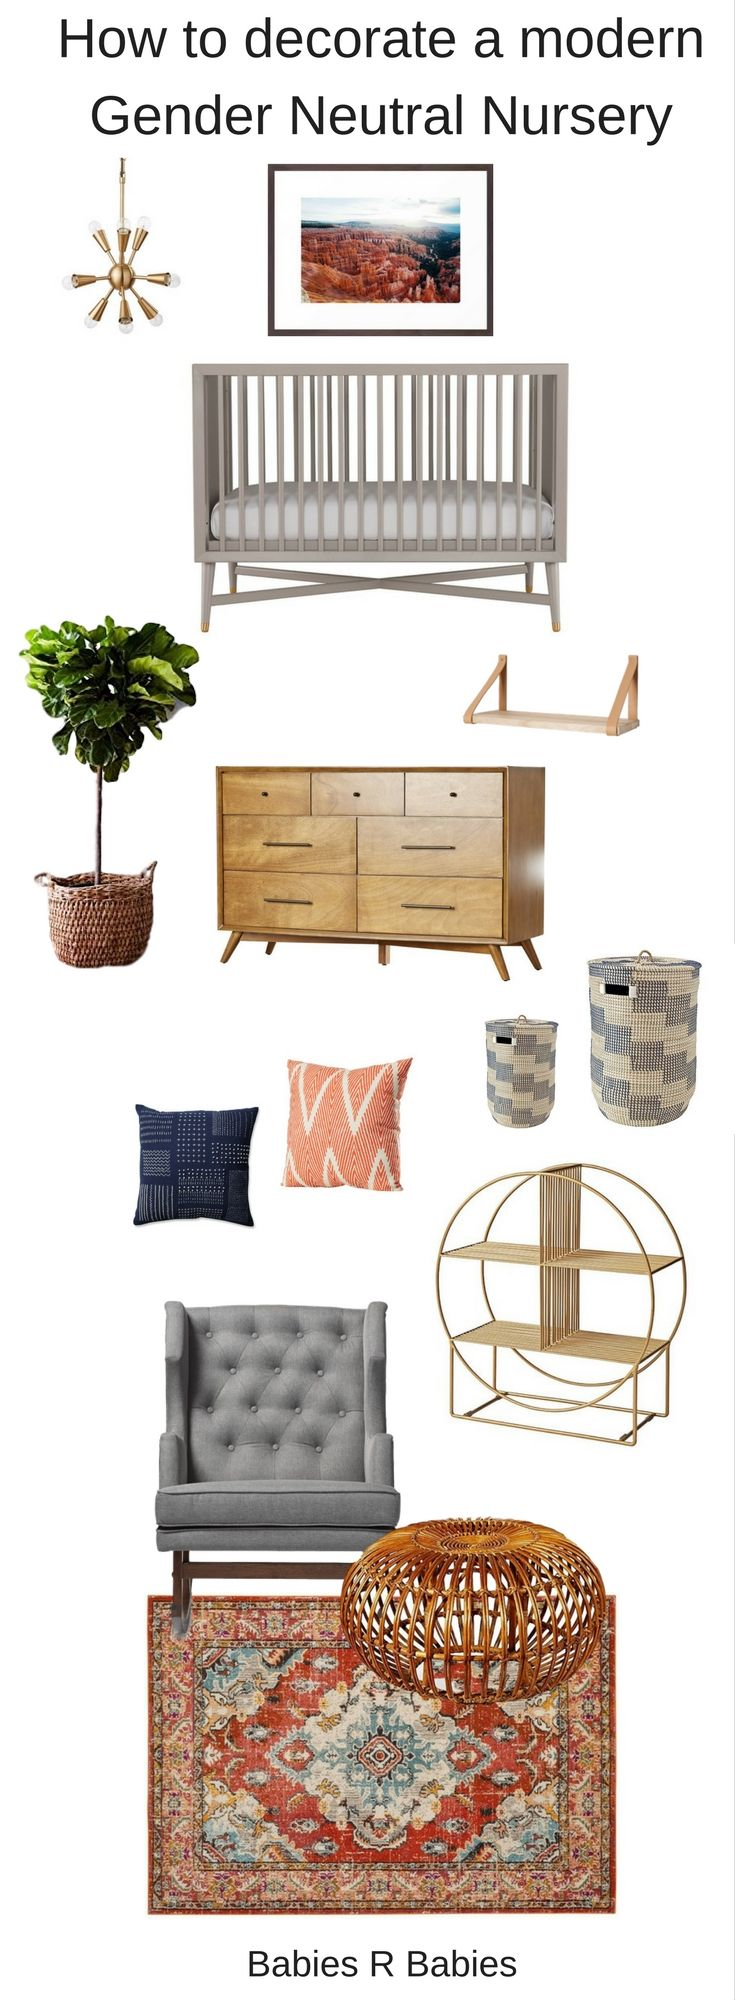 How to decorate a modern gender neutral nursery. #genderneutralnursery #genderneutral